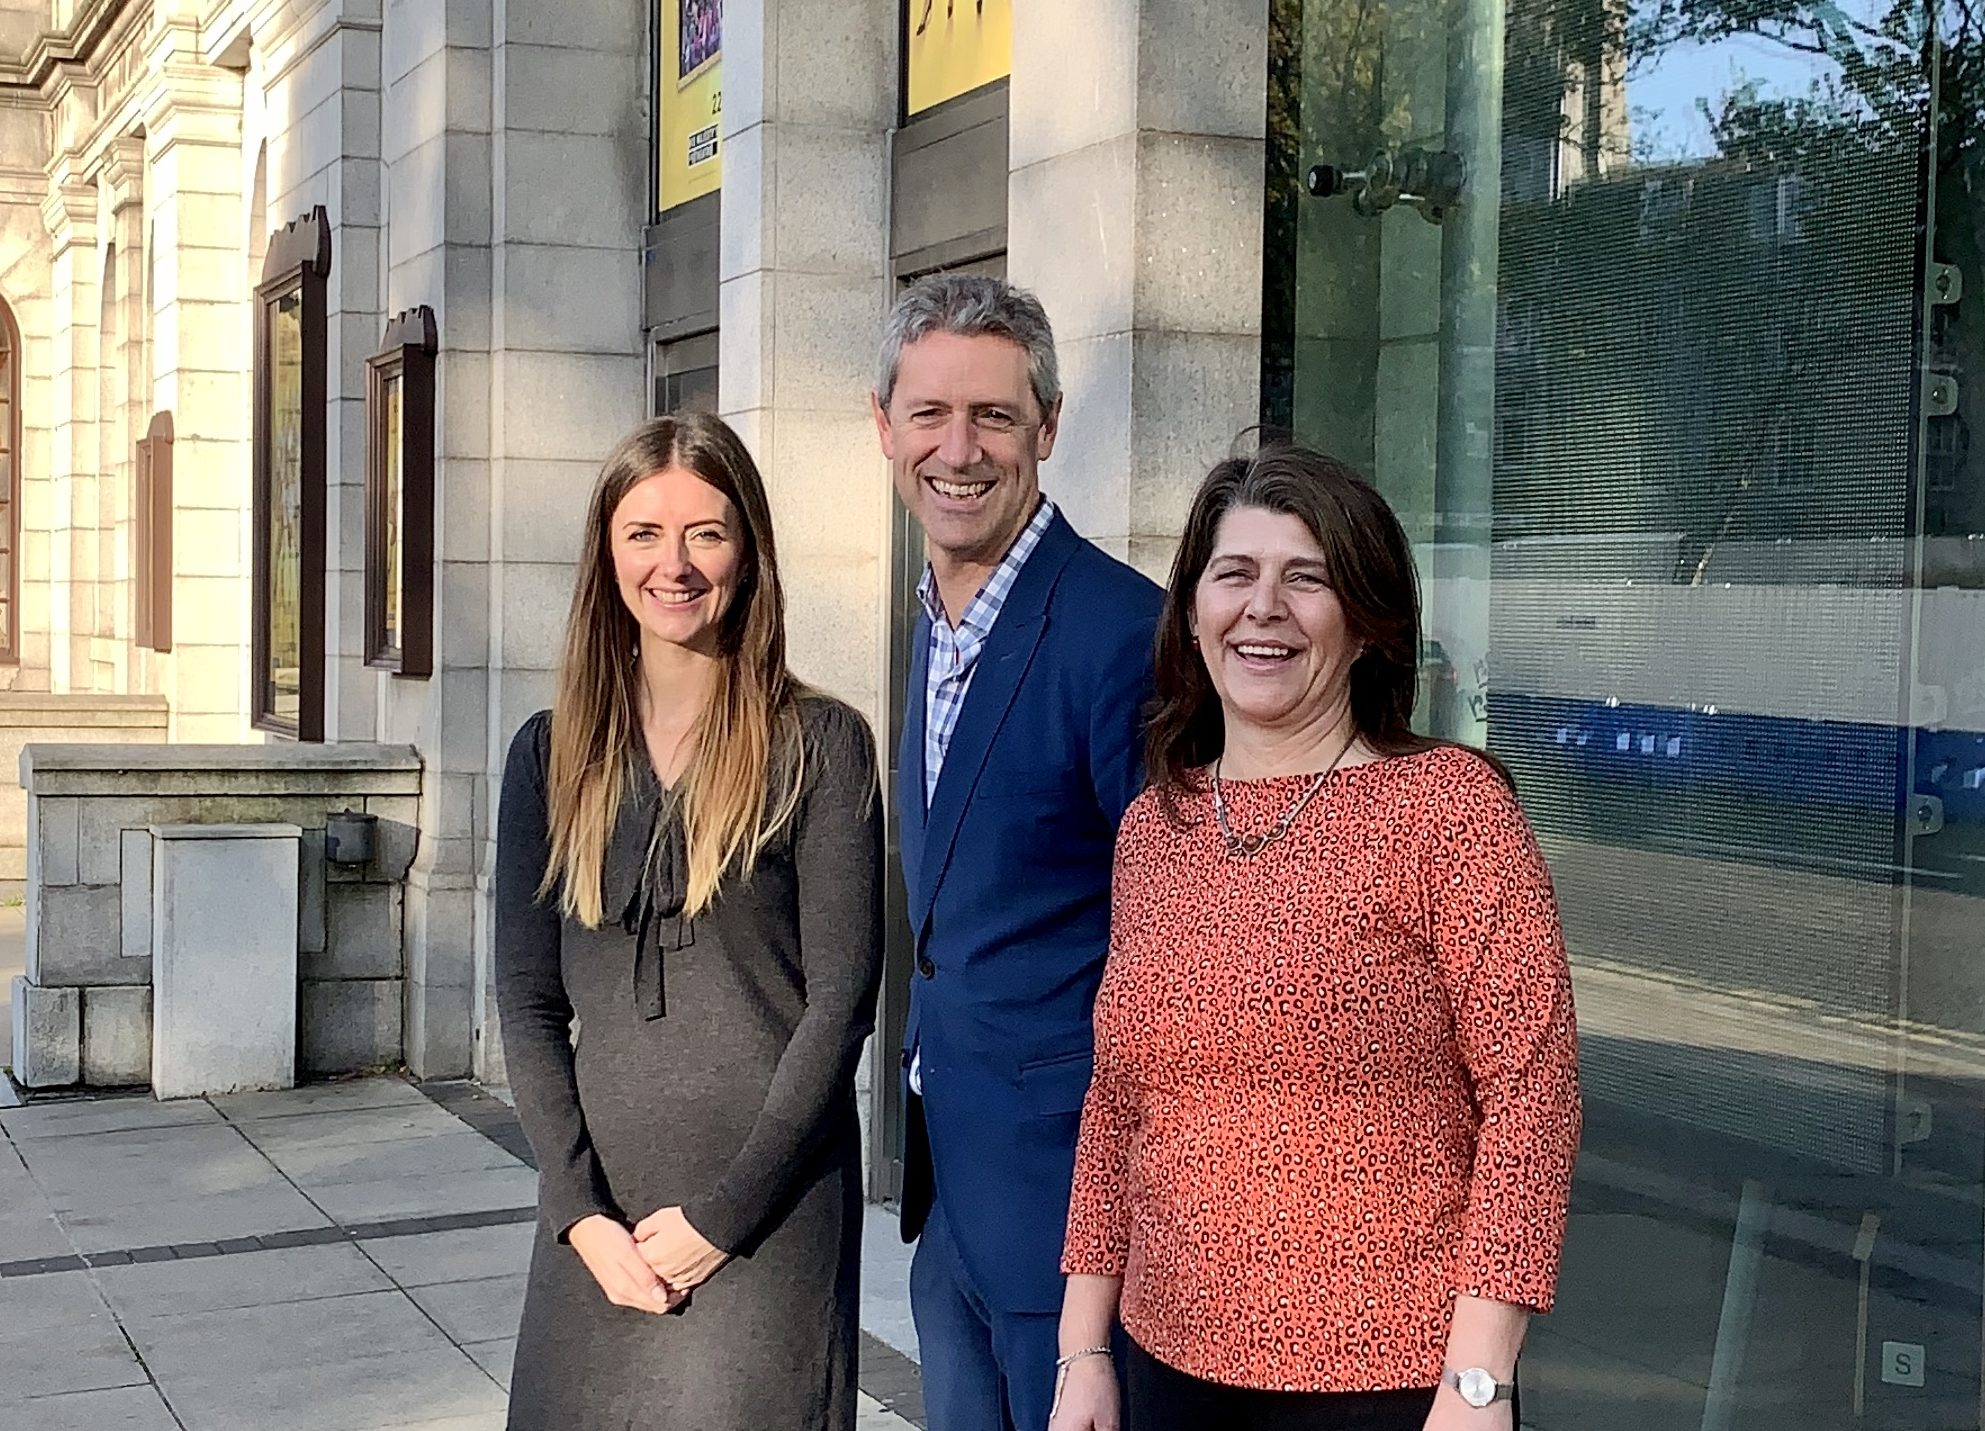 -  Jo Robinson Regional Director VisitScotland, Chris Foy Chief Executive VisitAberdeenshire and Marie Boulton, Cultural Spokesperson Aberdeen City Council at this morning's launch of the music competition.